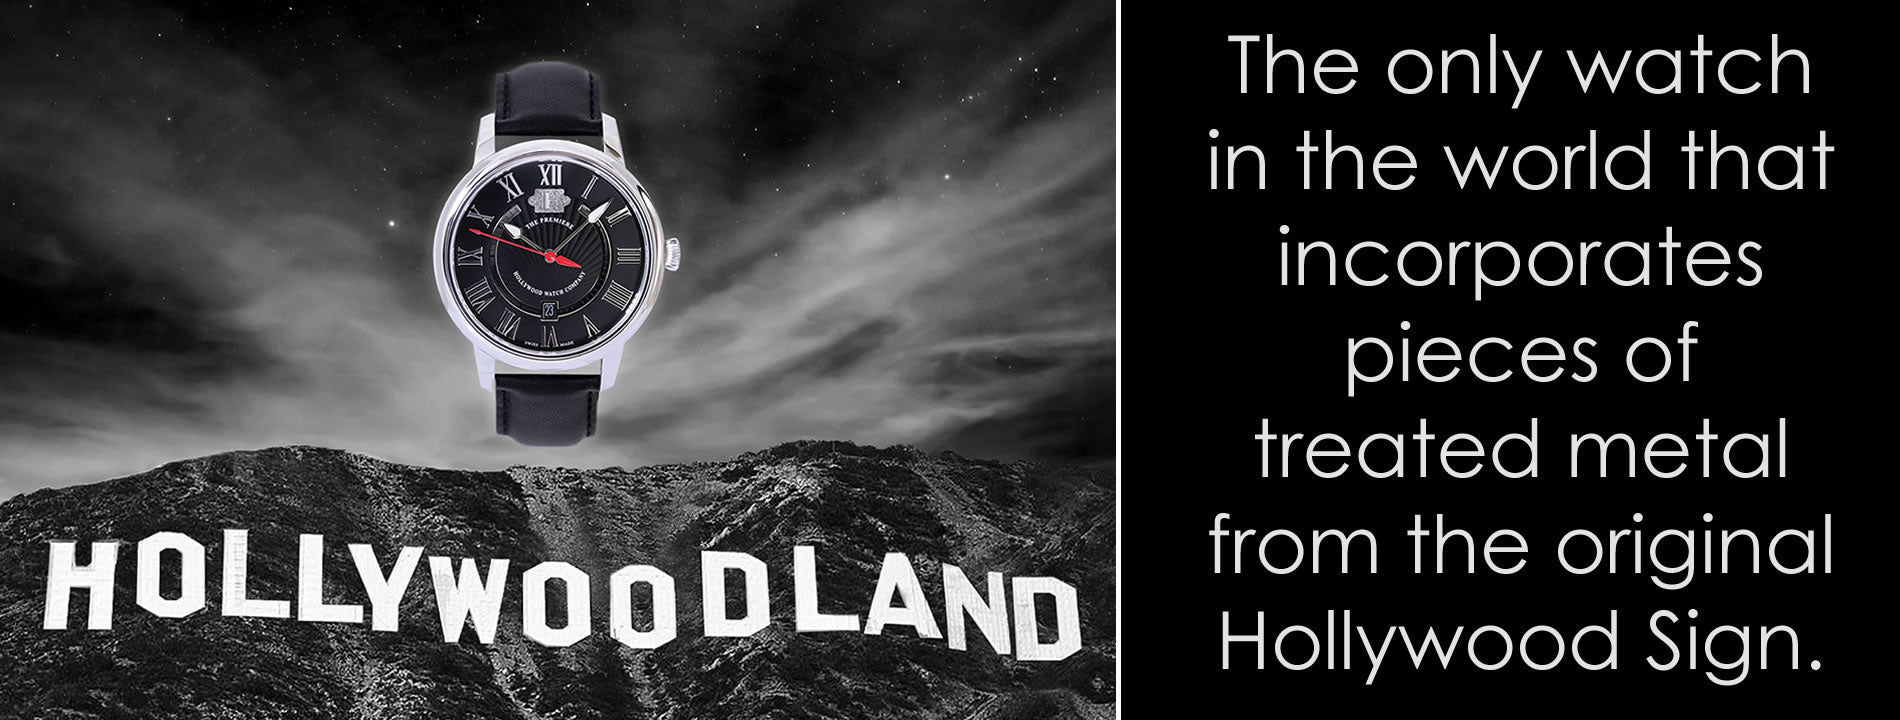 The only watch in the world that incorporates pieces of treated metal from the original Hollywood Sign.